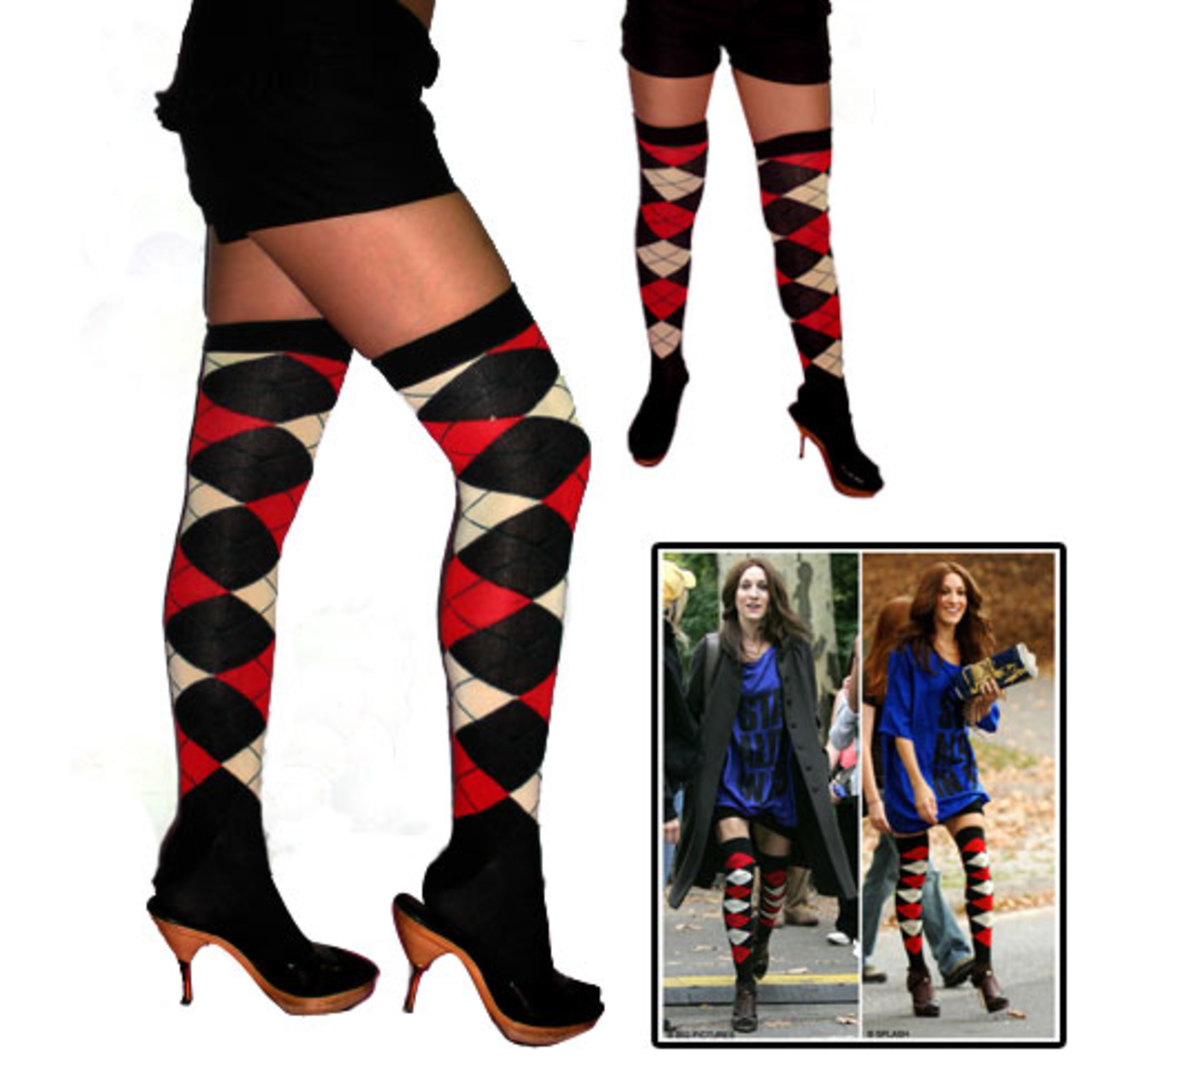 Over the Knee Socks in a Bold, Bright Pattern is a Definite NO